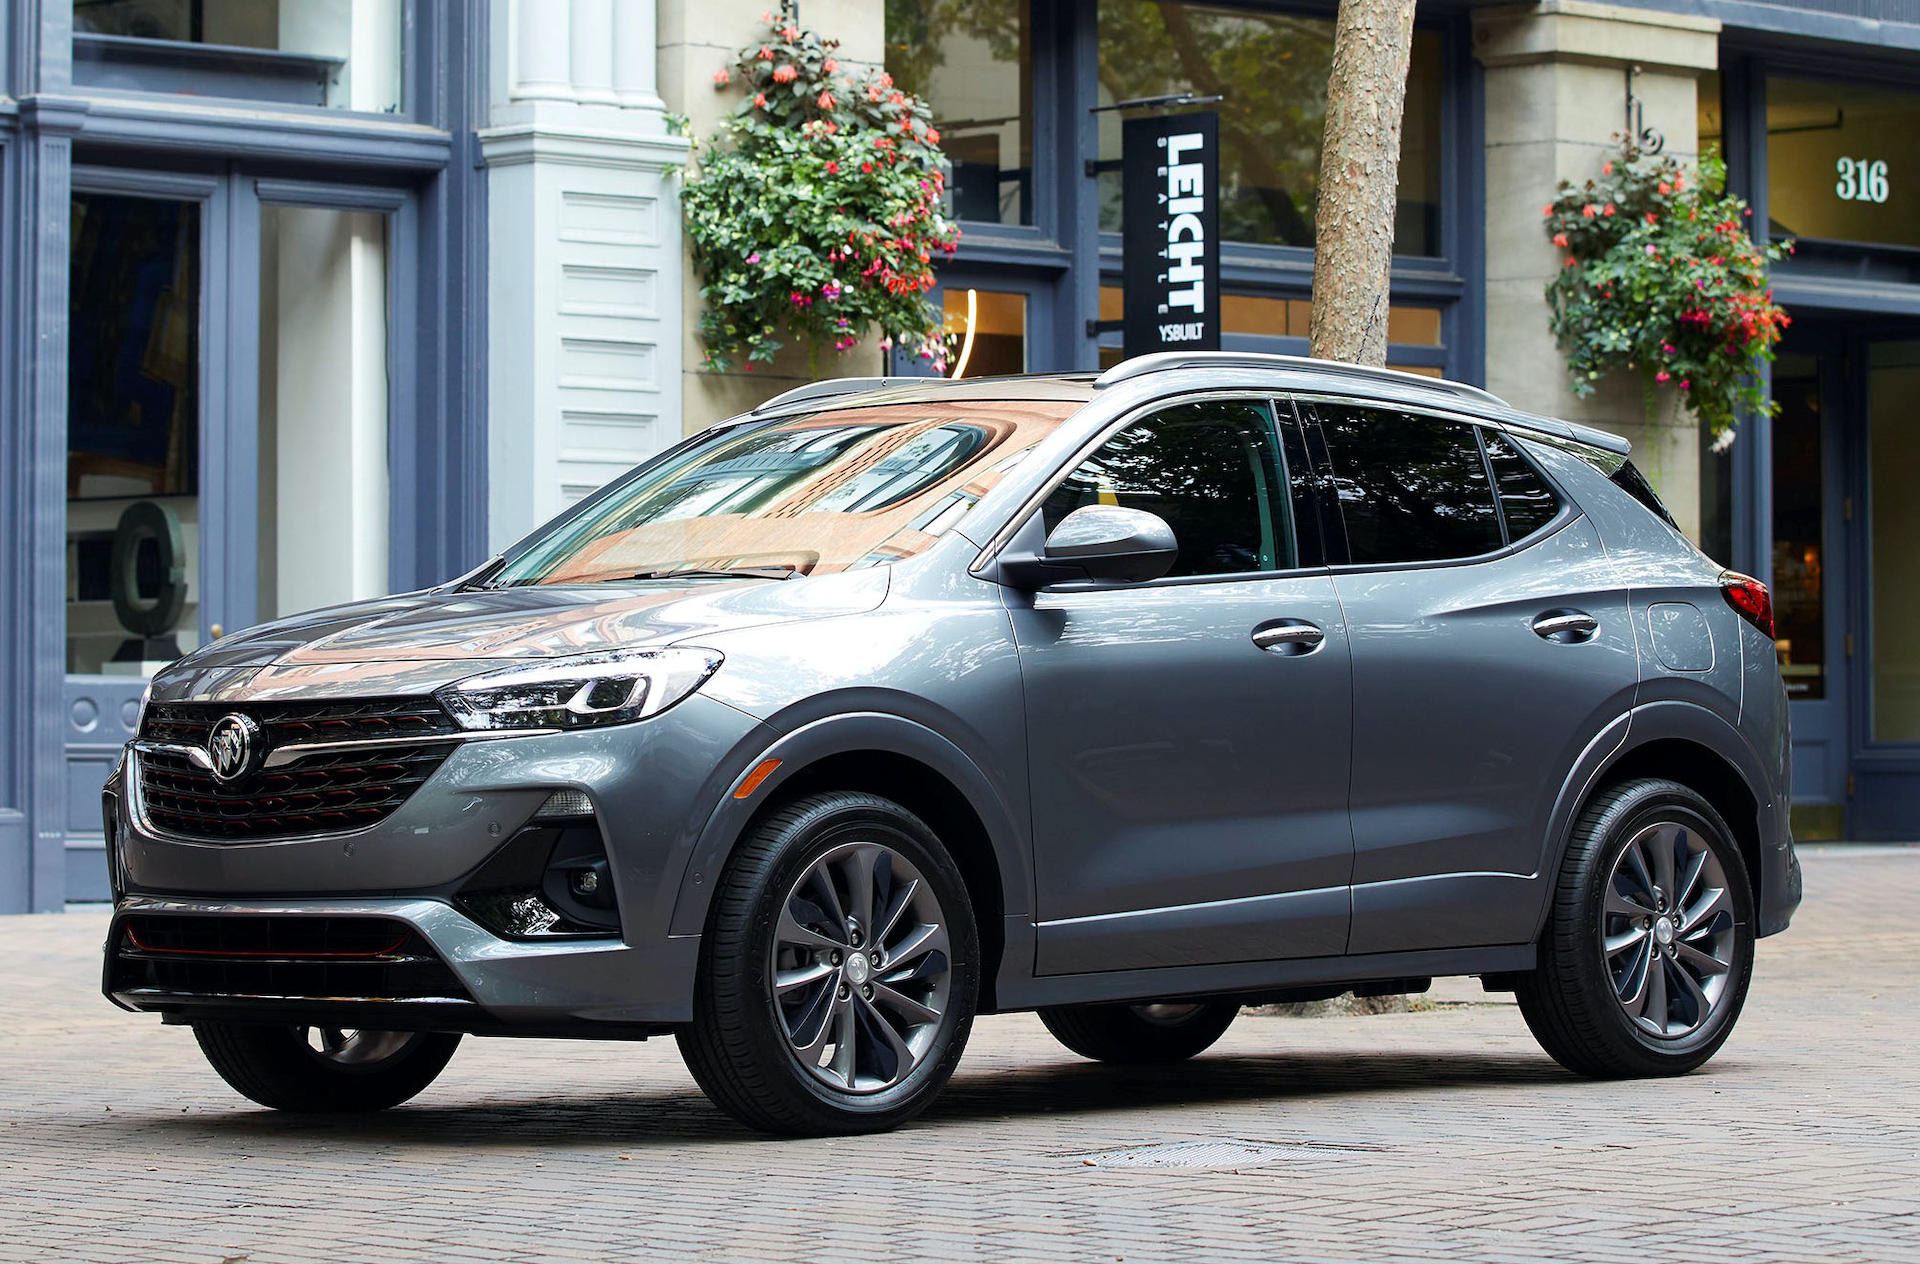 2021 Buick Encore Review, Ratings, Specs, Prices, And Photos 2021 Buick Encore Gx Safety Rating, Specifications, Tire Size